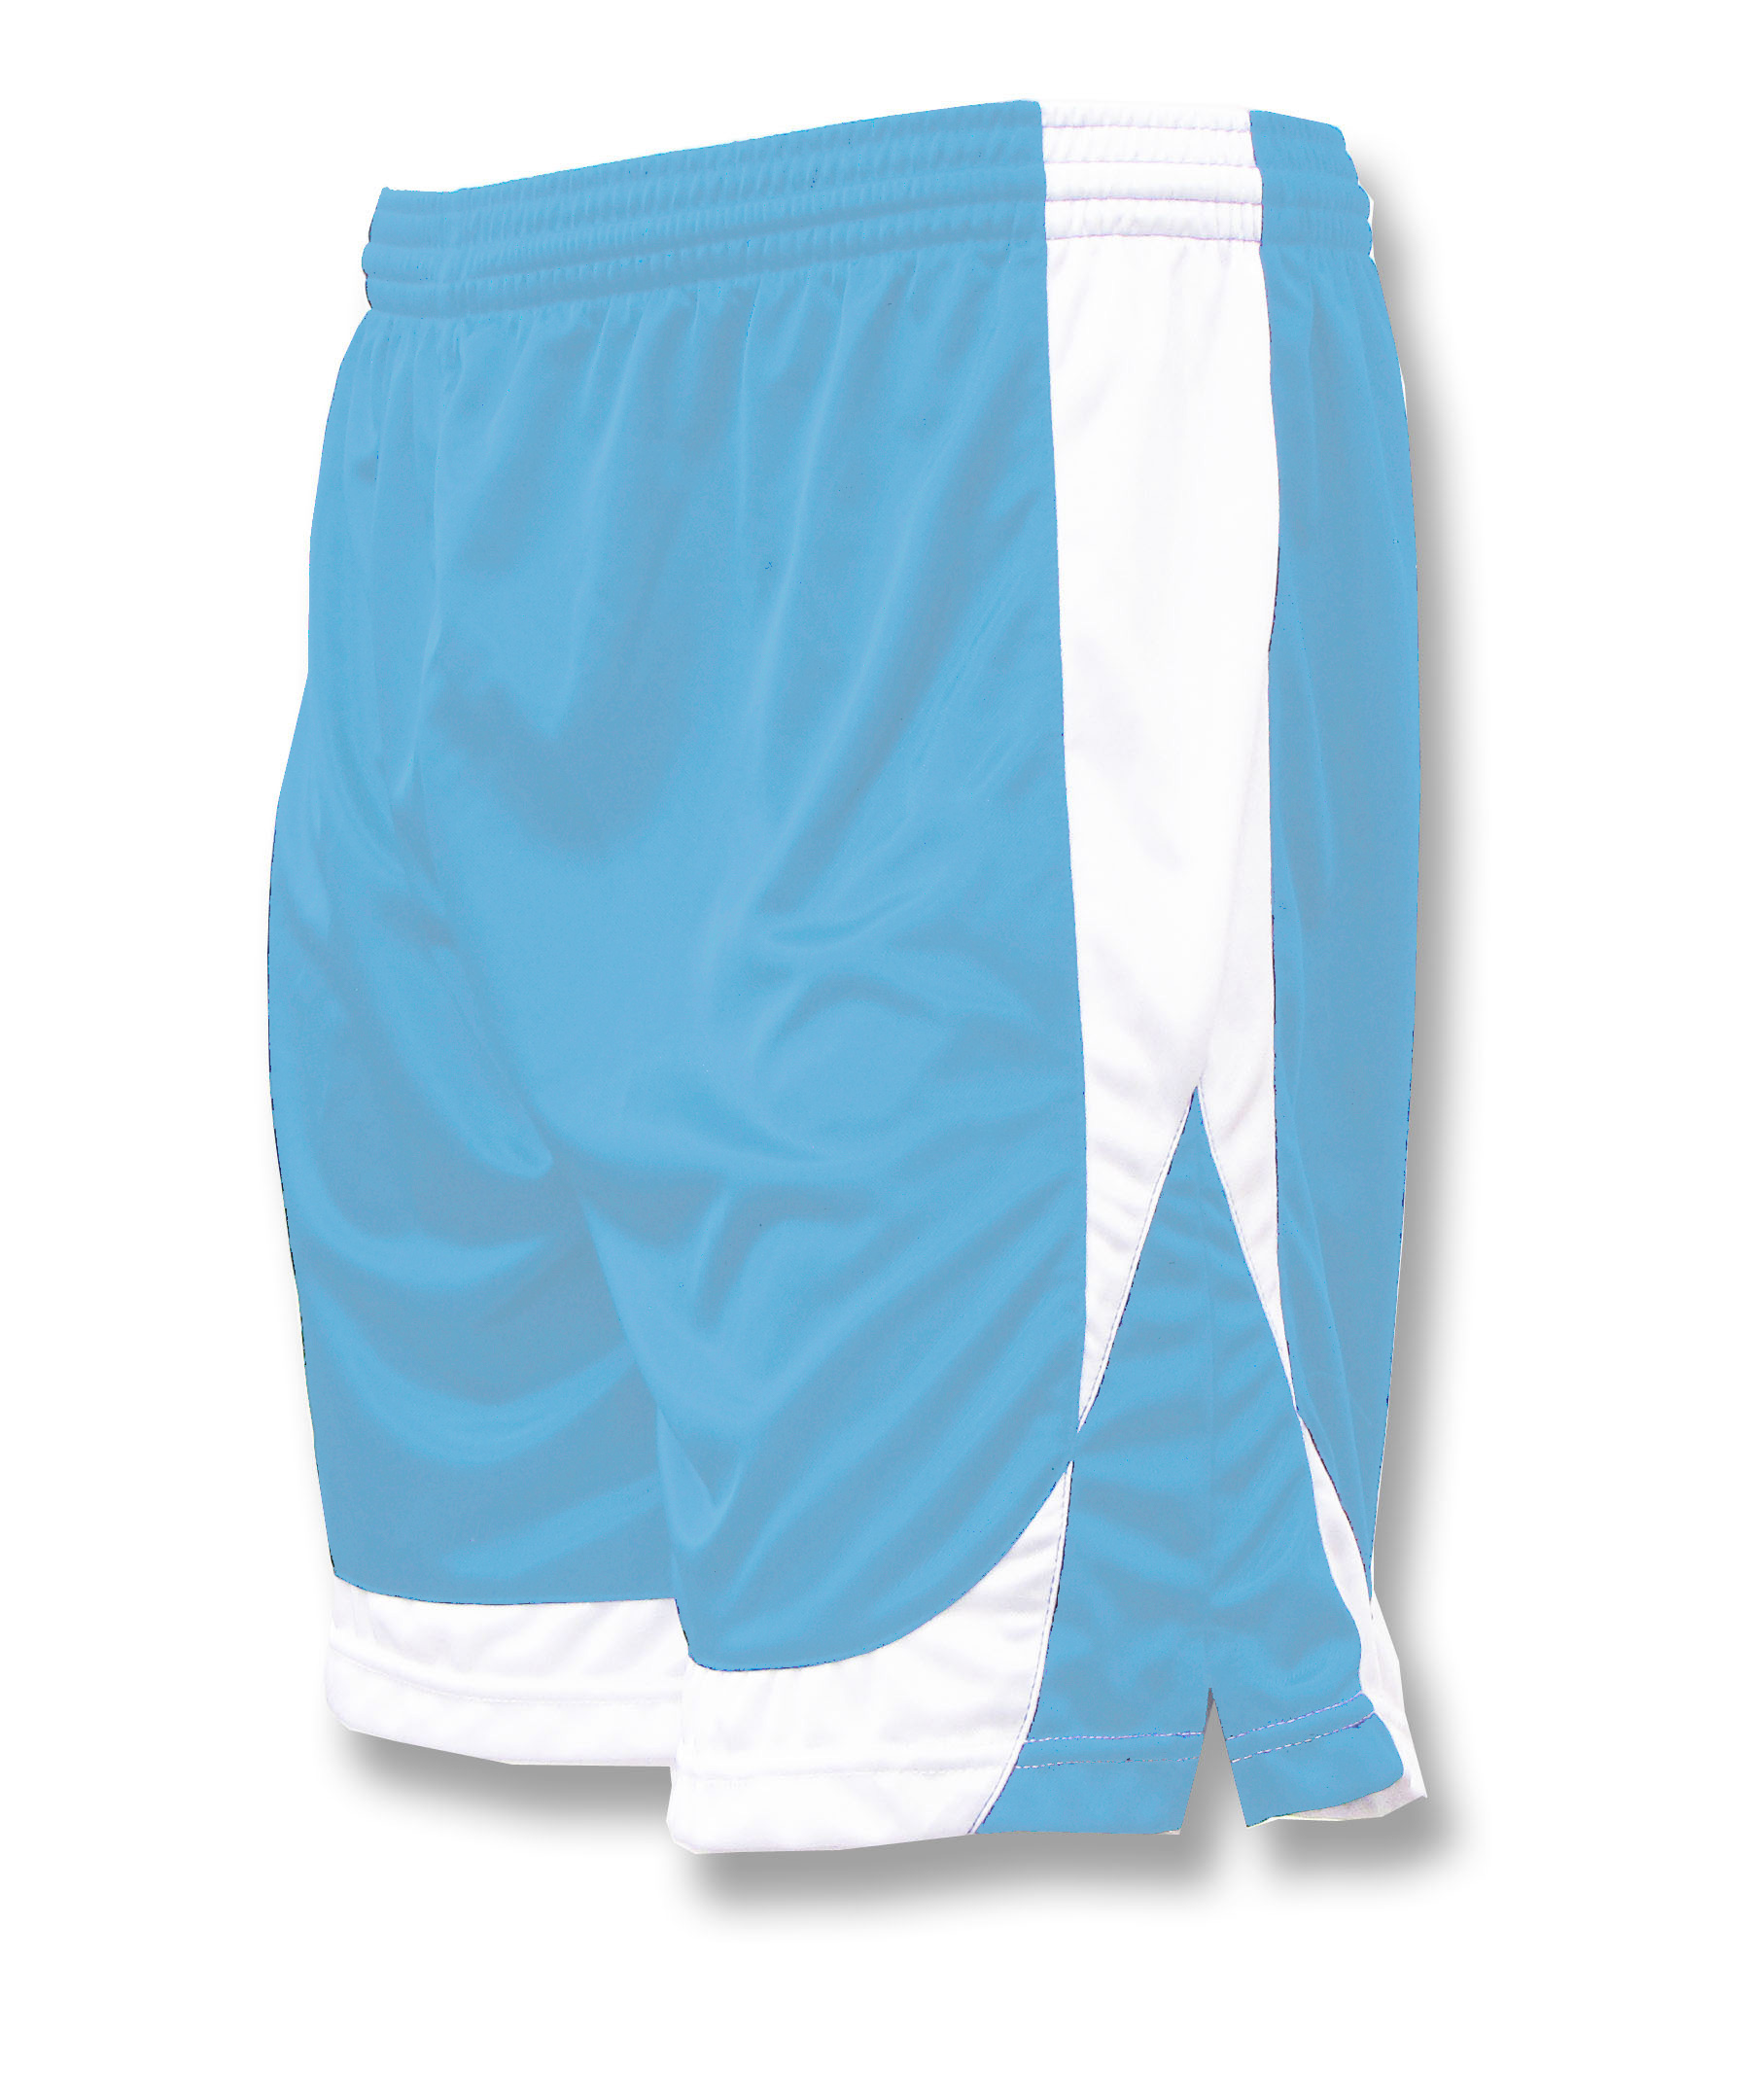 Omega soccer shorts in sky/white by Code Four Athletics